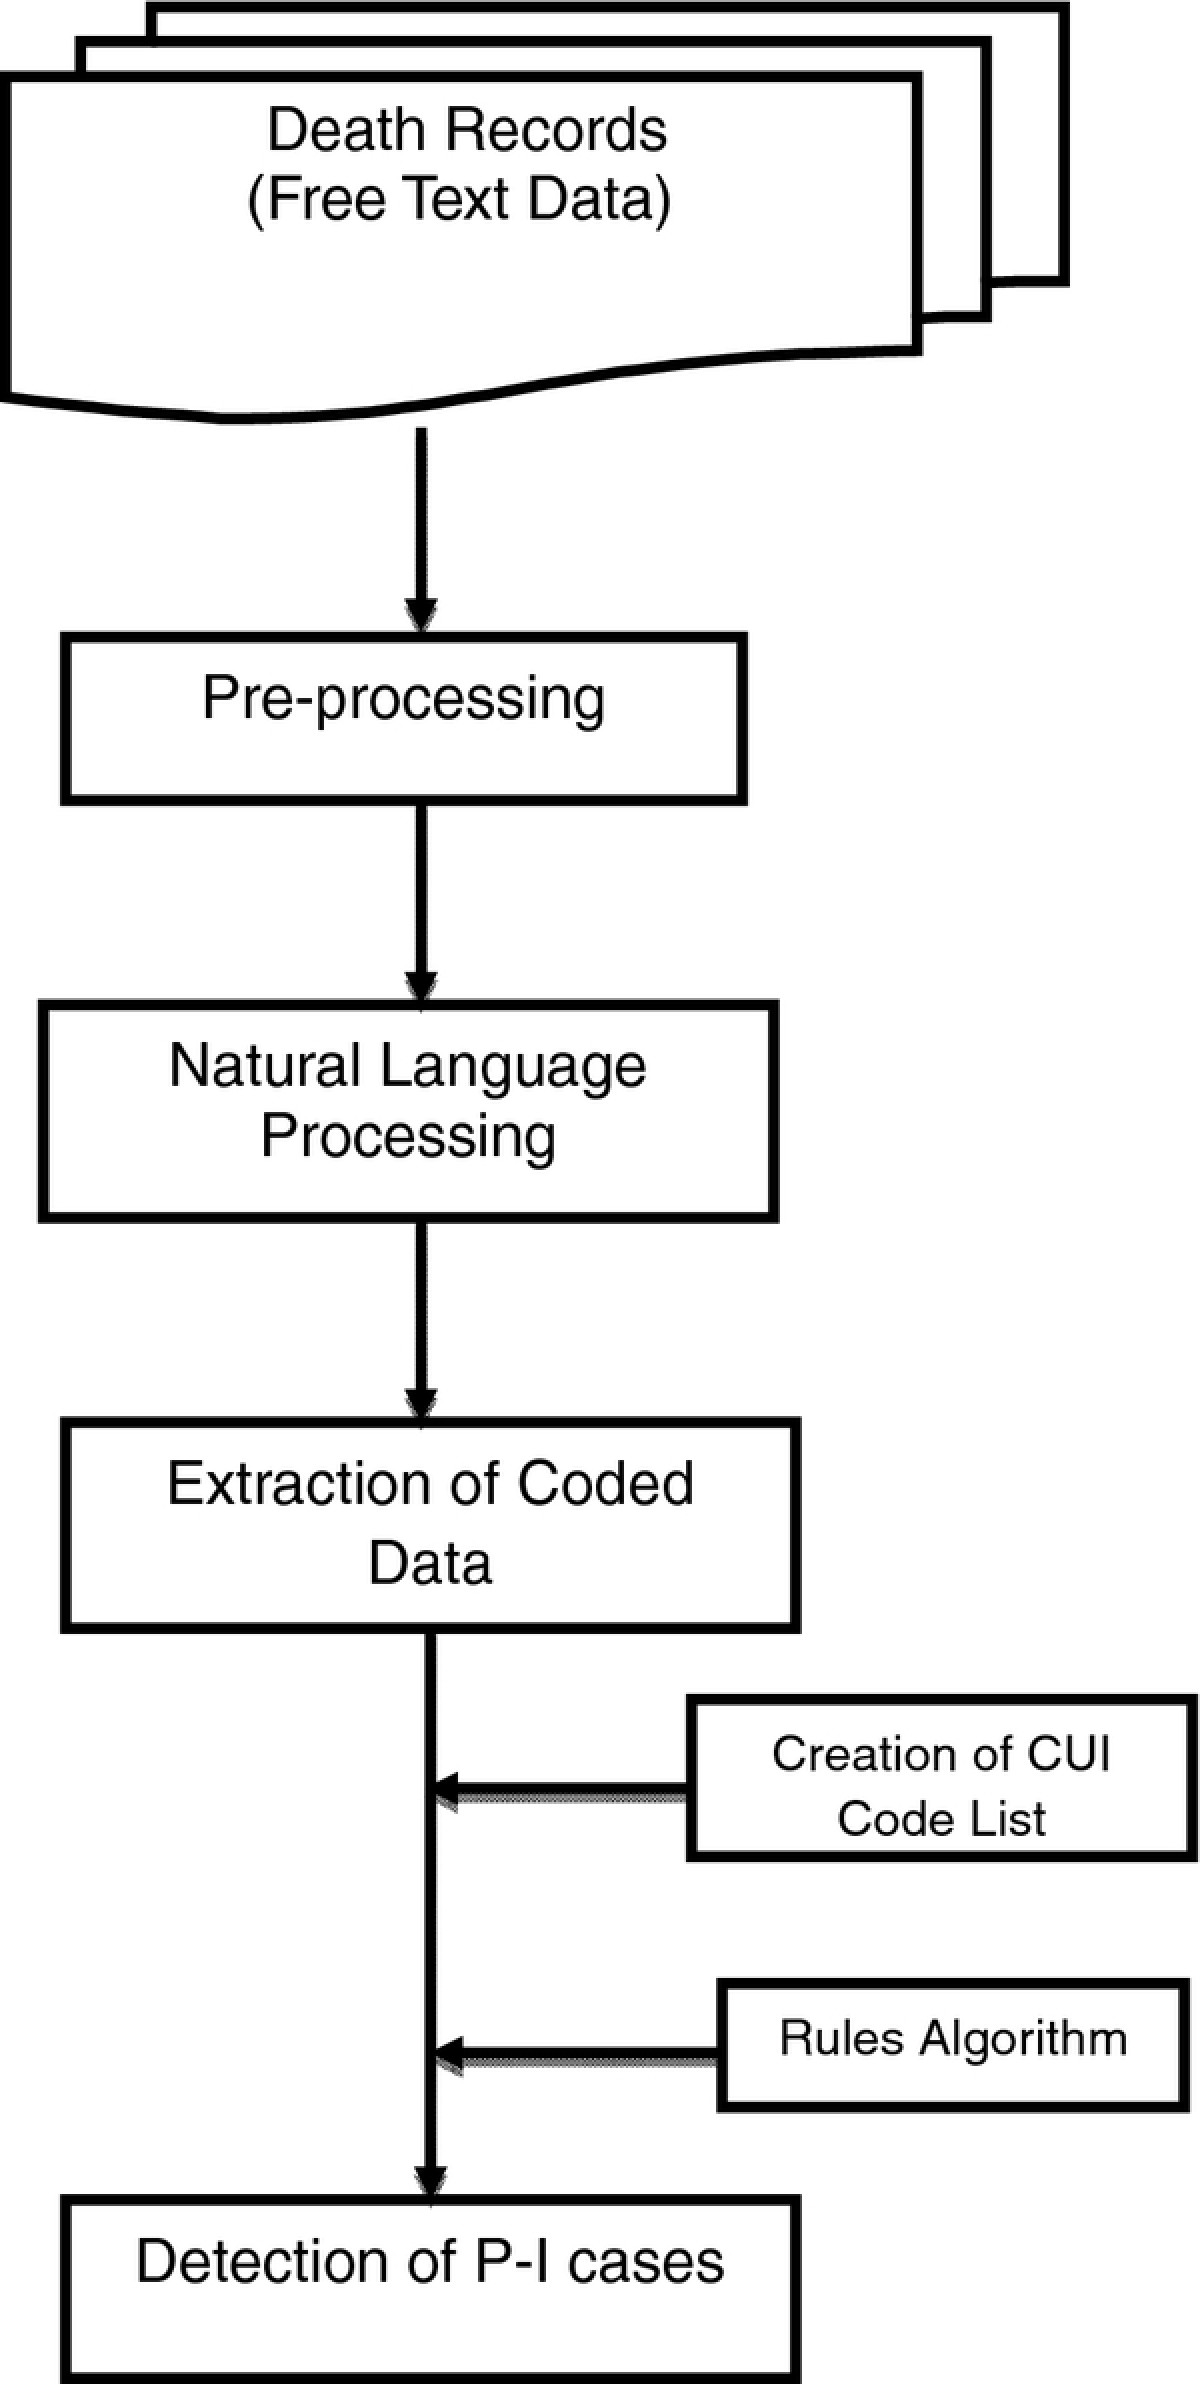 https://static-content.springer.com/image/art%3A10.1186%2F1472-6947-12-37/MediaObjects/12911_2011_Article_527_Fig4_HTML.jpg